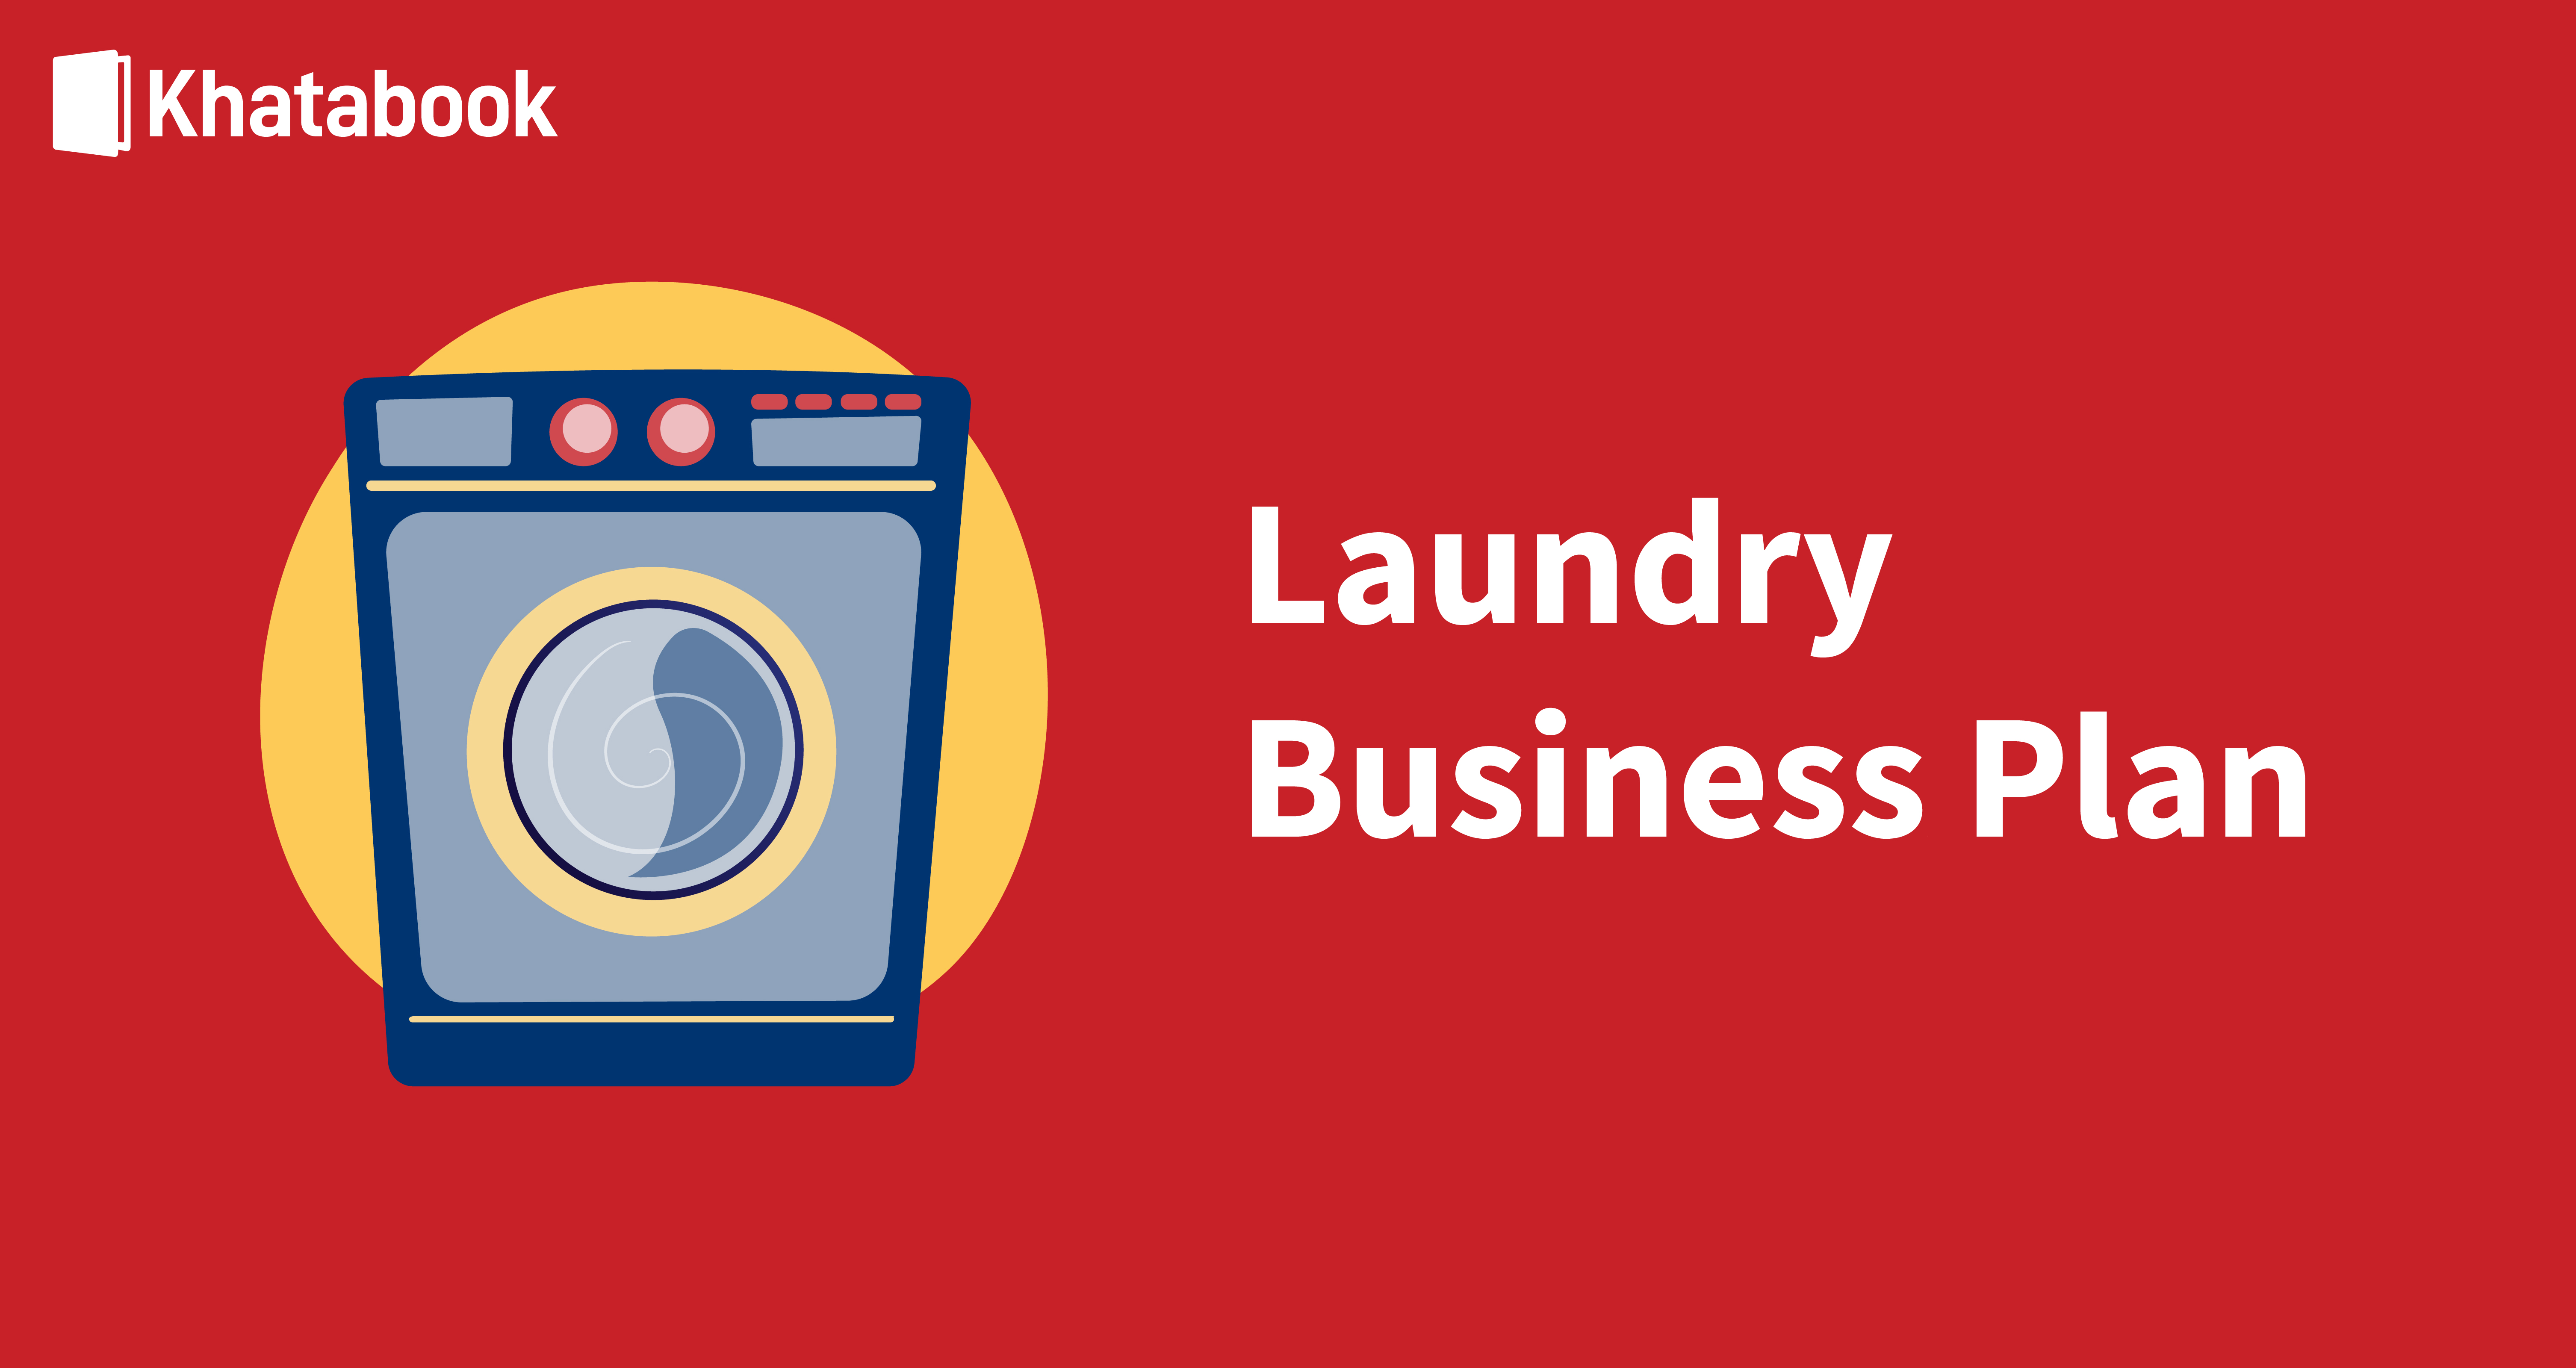 How To Start A Laundry Business In India